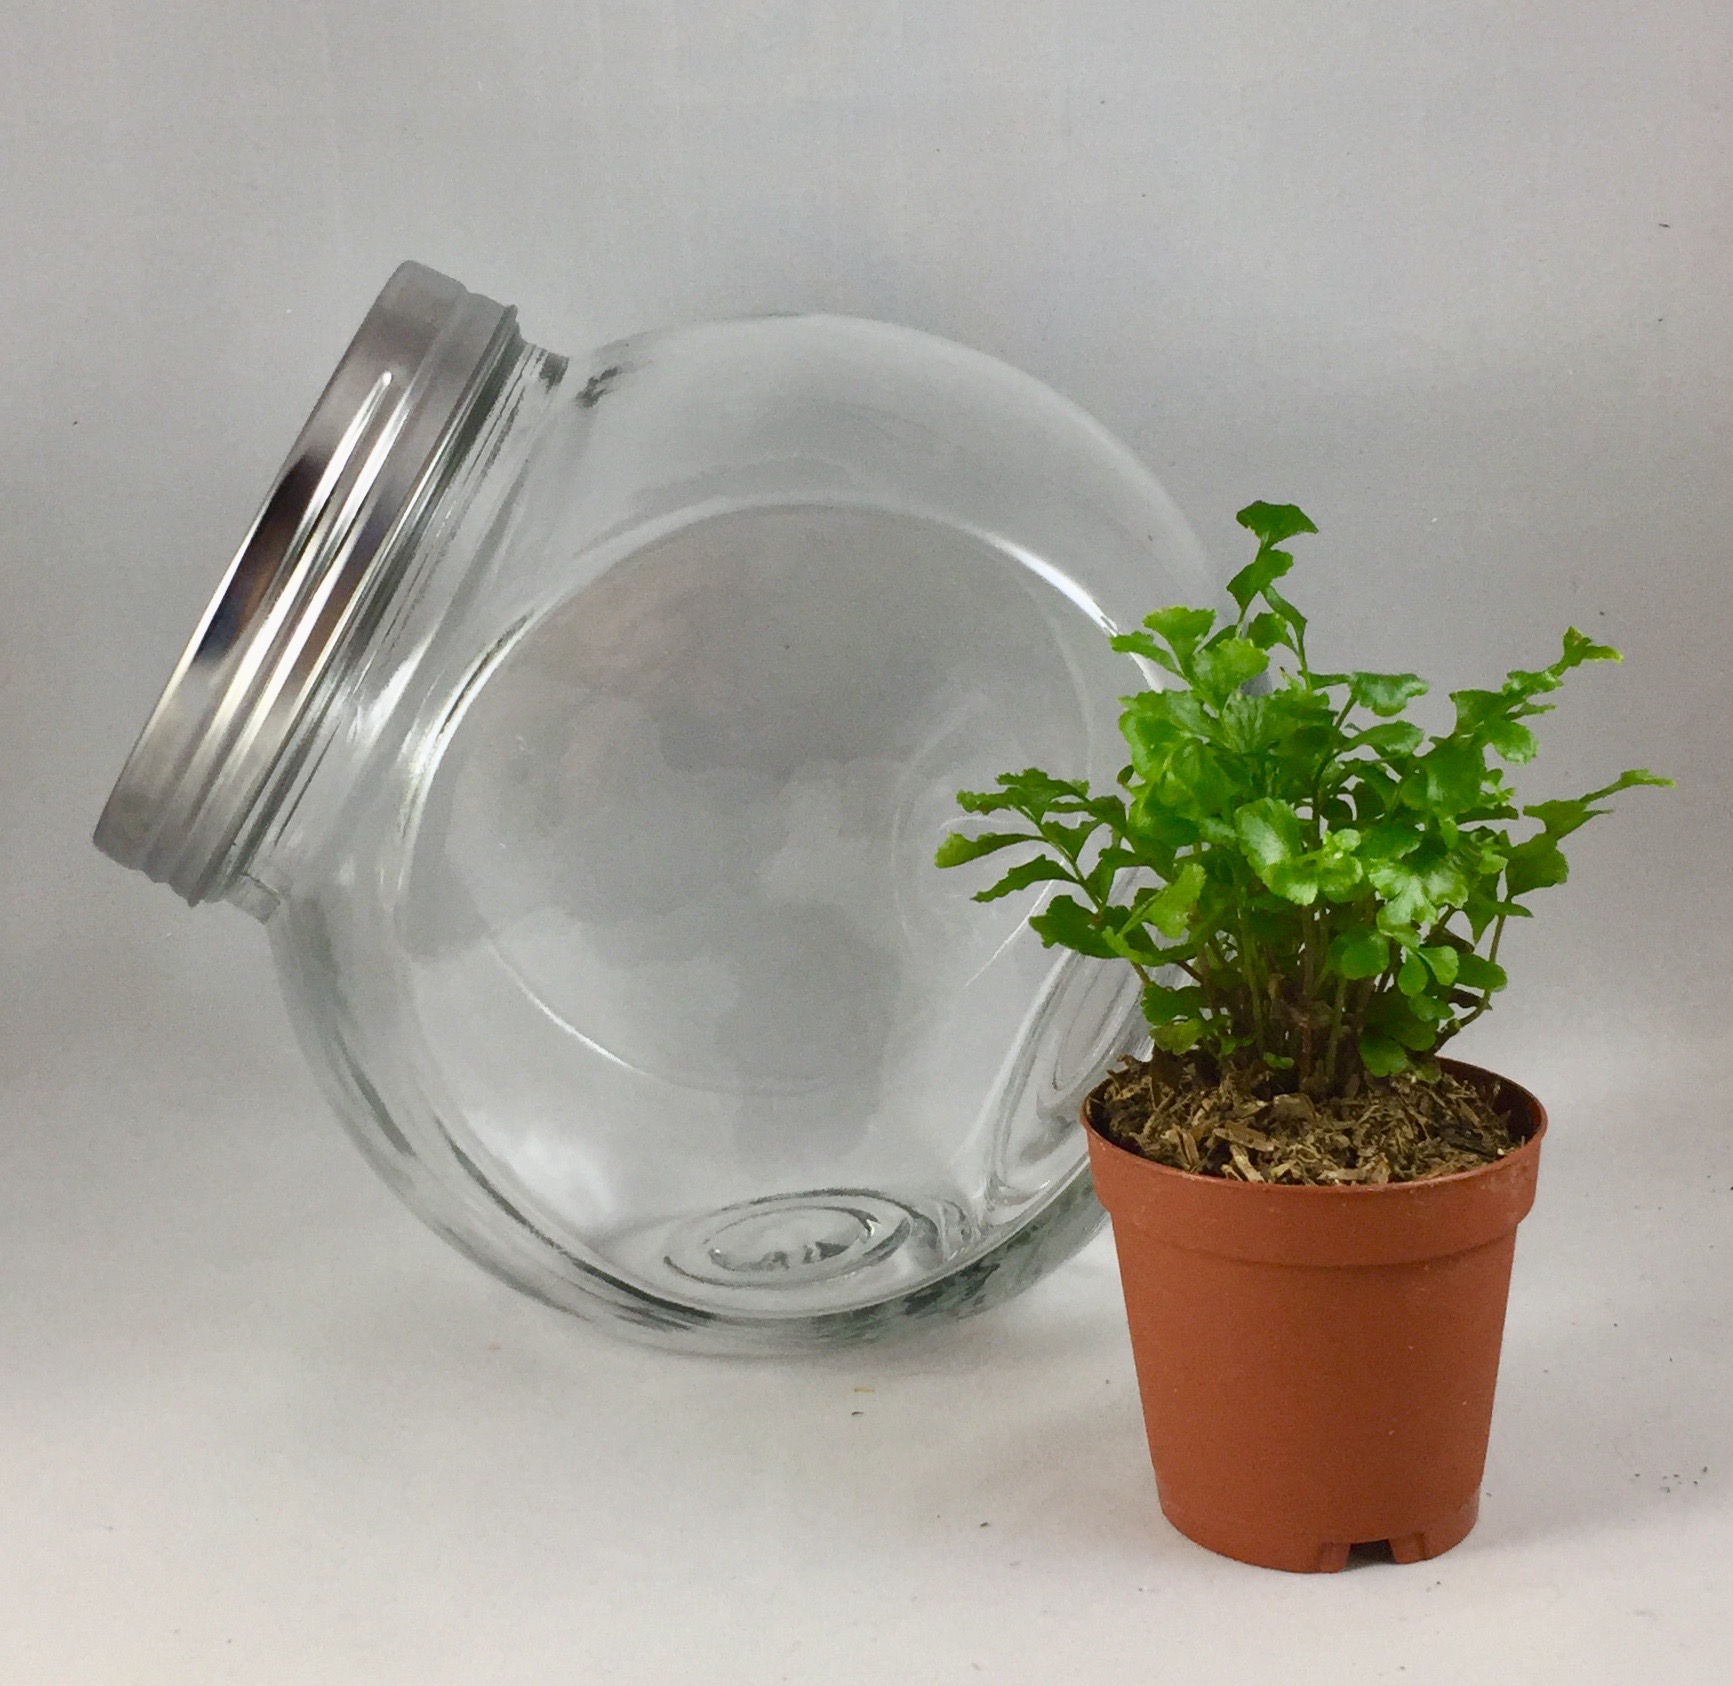 Small Tilted Terrarium$15 per student - Includes 6 1/2 inch tilted jar, one plant, base sands, dirt, decorations and tote bag.